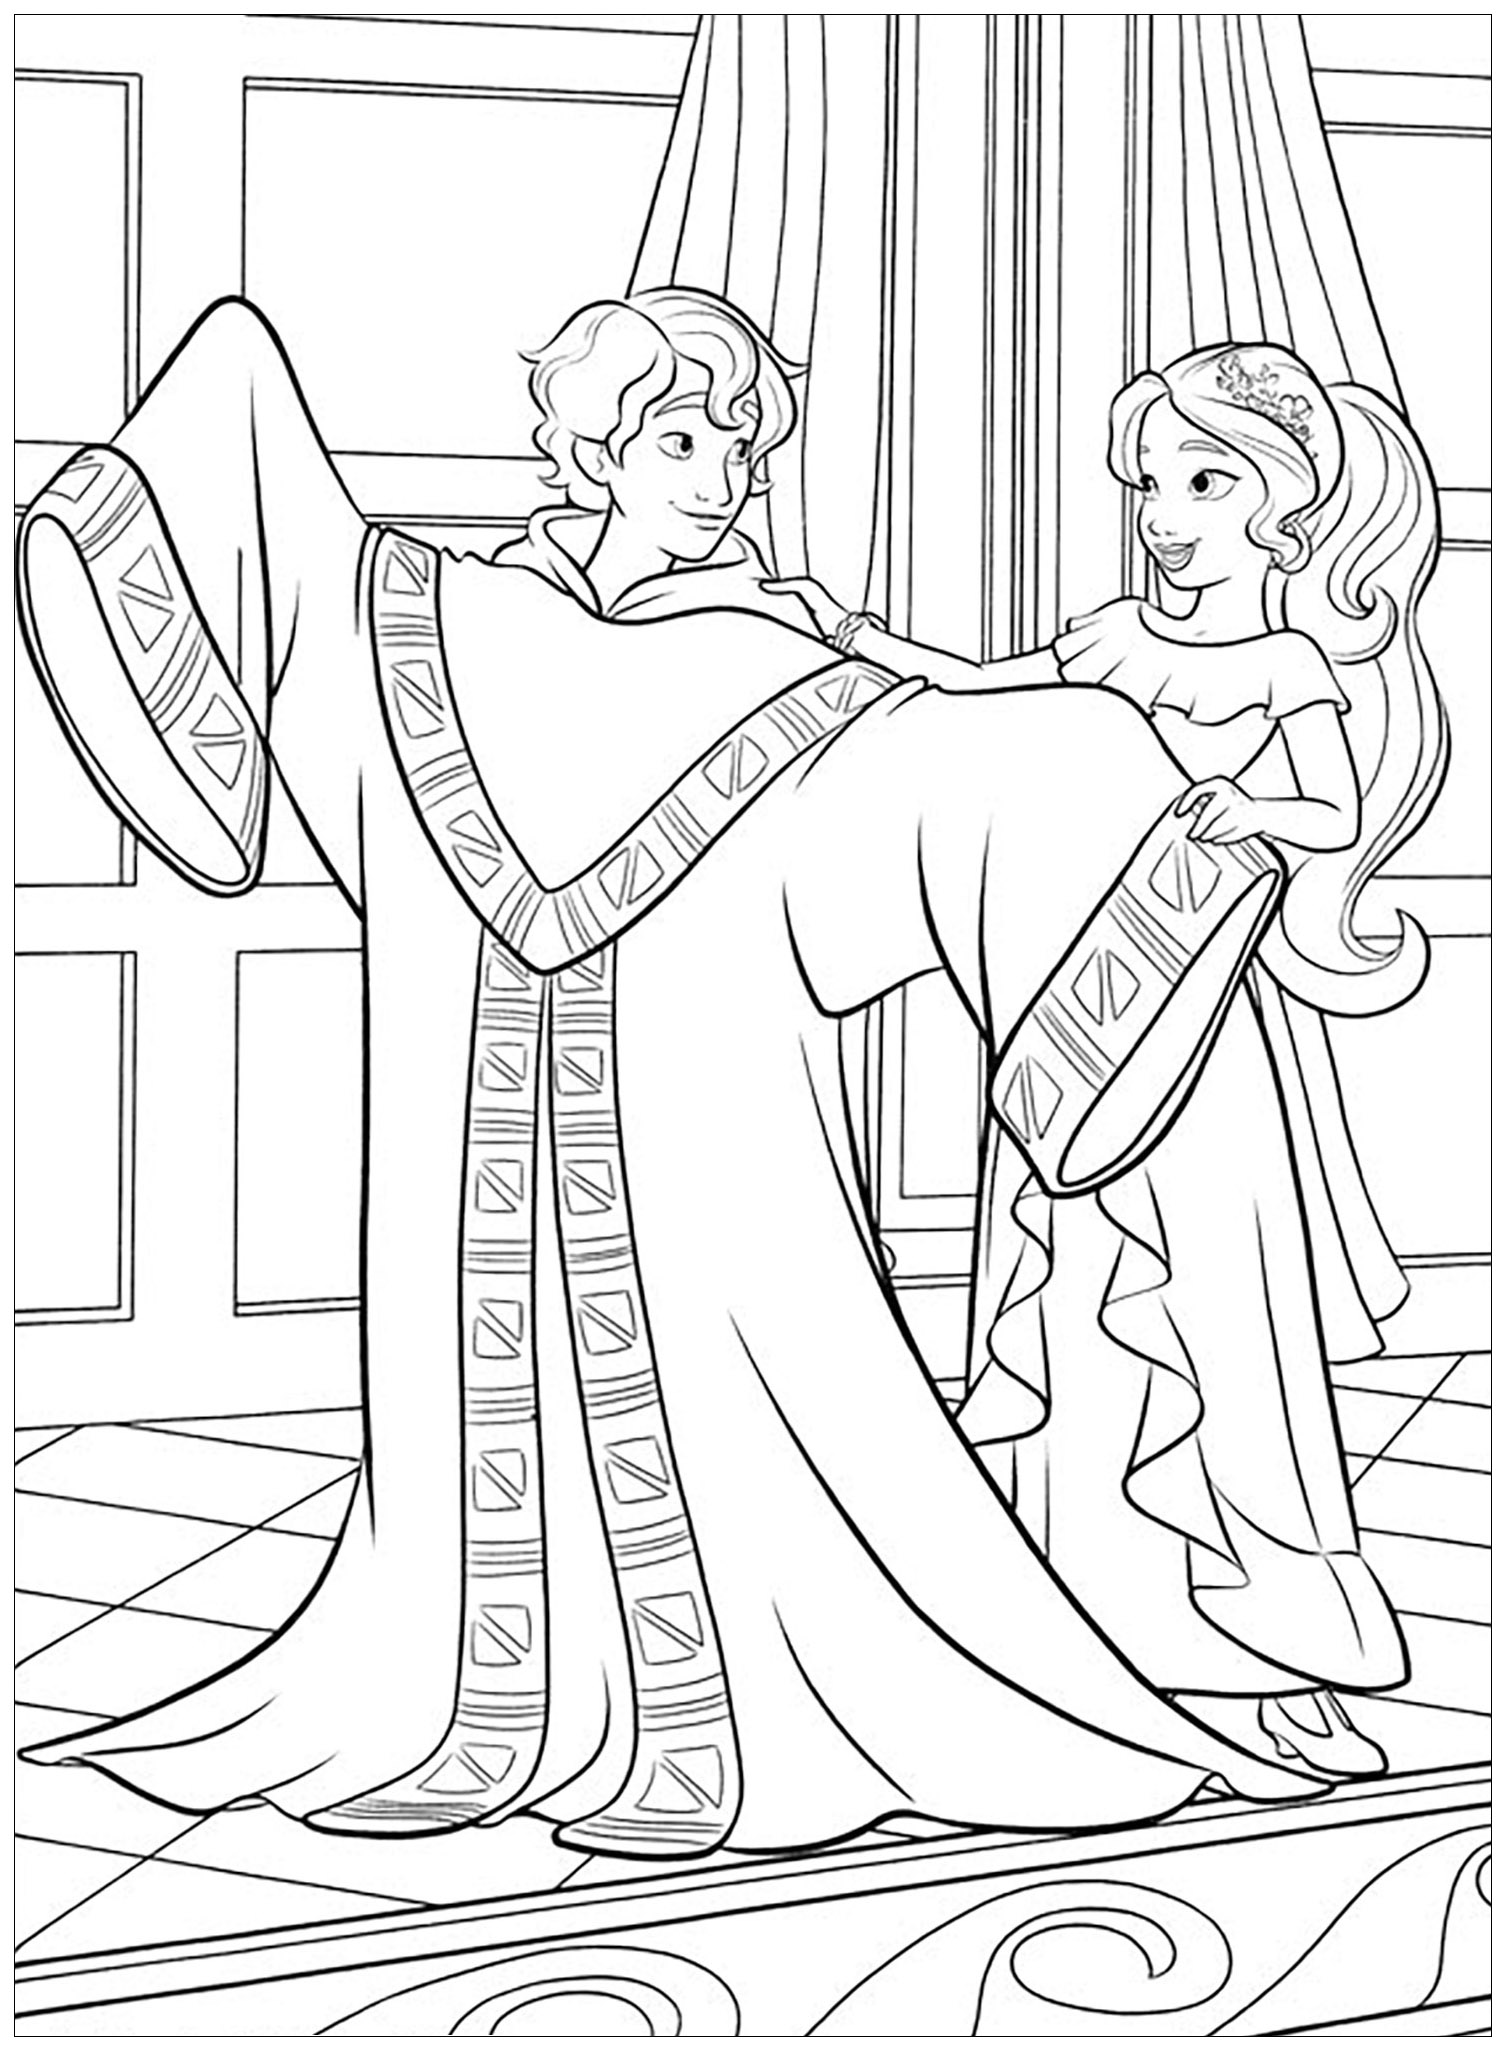 Elena avalor to download - Elena Avalor Kids Coloring Pages